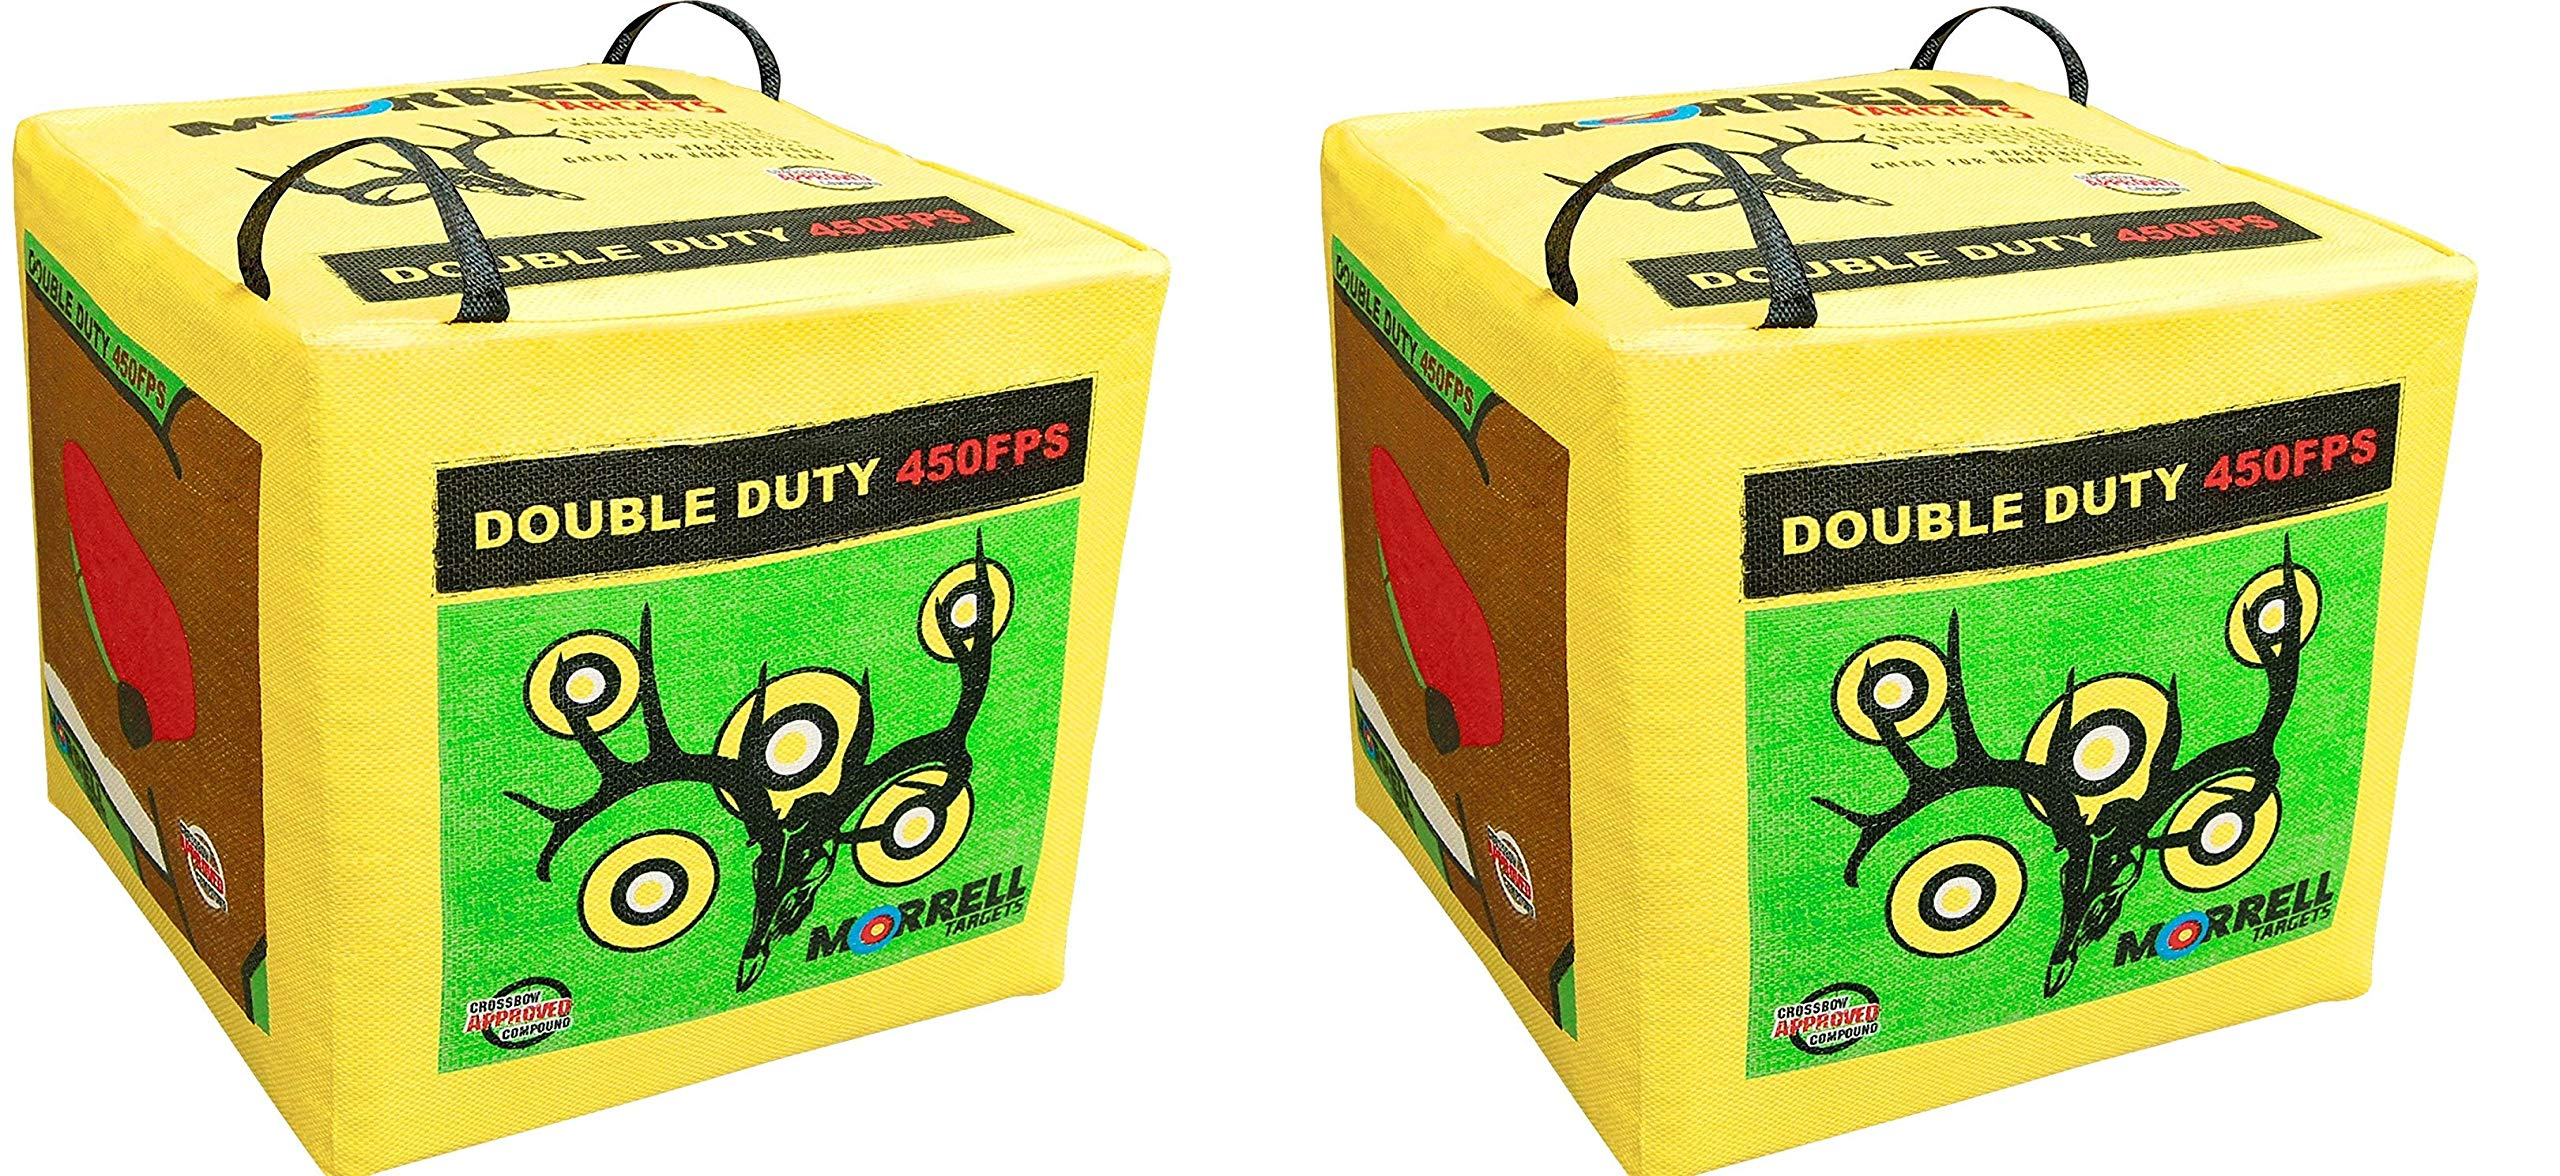 Morrell Double Duty 450FPS Field Point Bag Archery Target - for Crossbows, Compounds, Traditional Bows and Airbows (2-Pack)